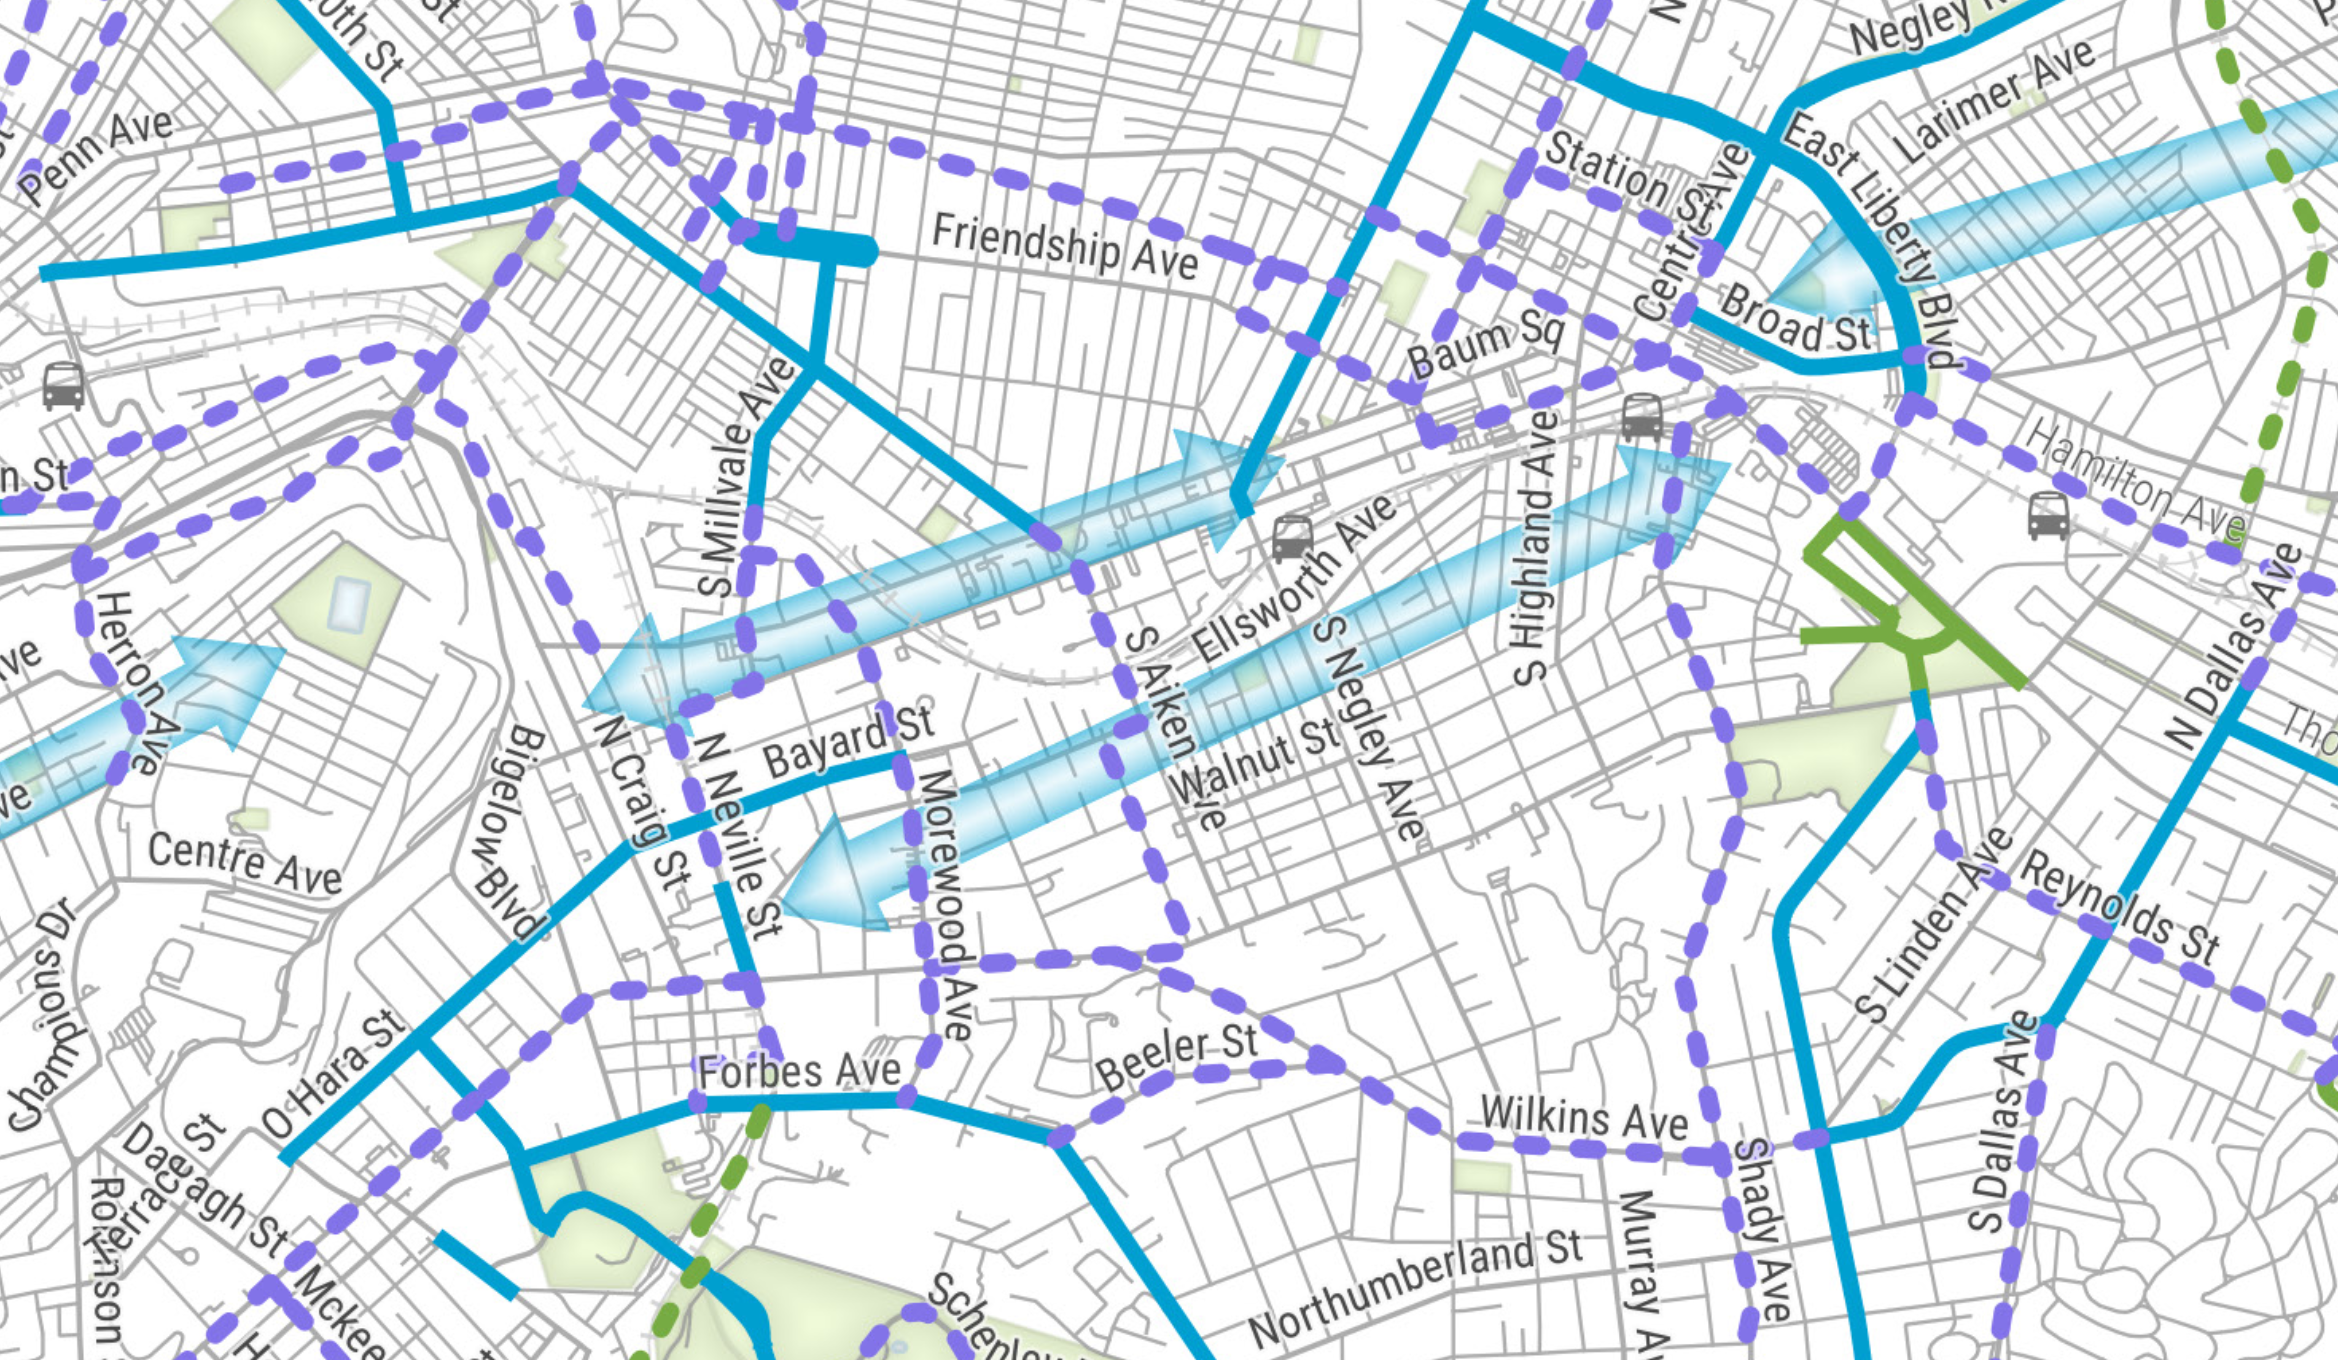 Image shows a map from the Bike Plan showing Ellsworth as a missing gap.